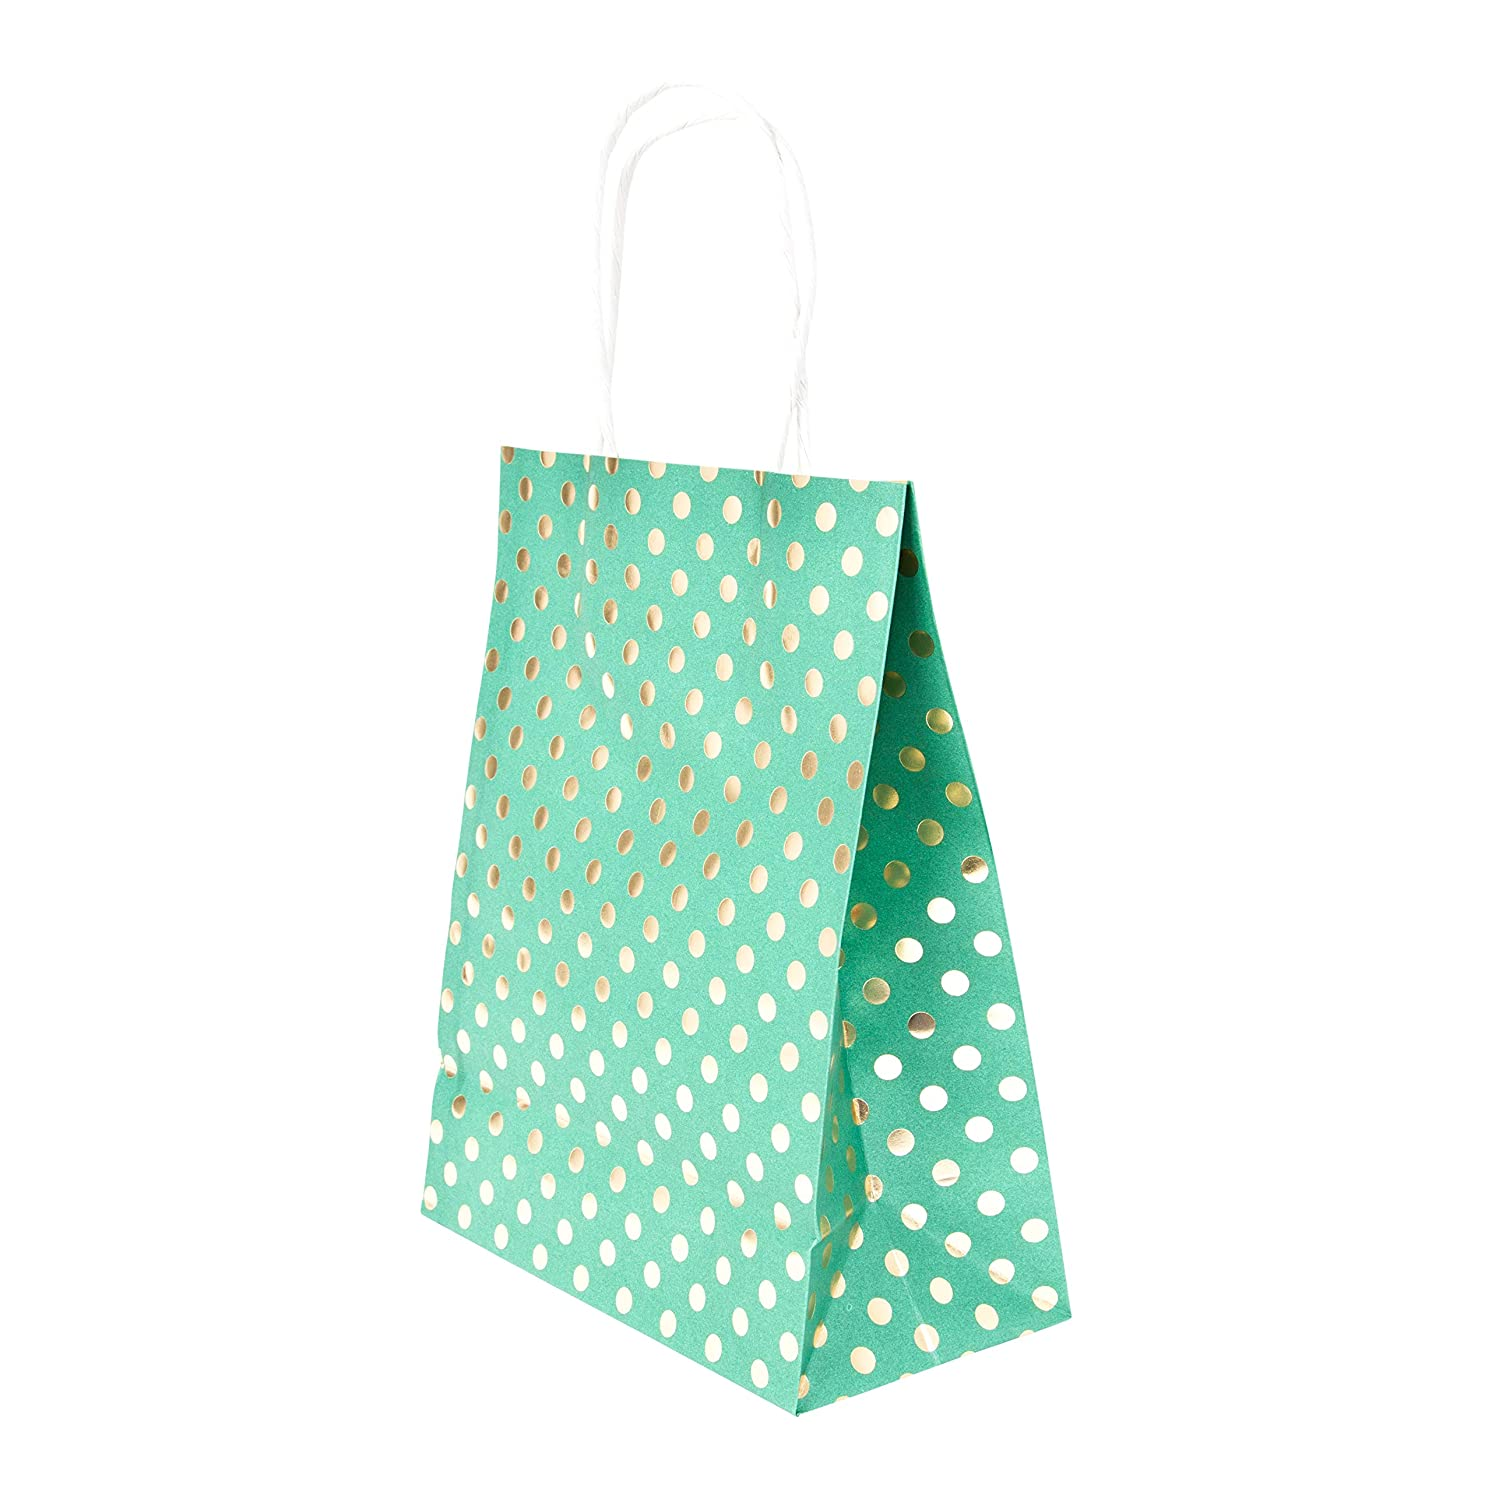 Medium Size Gift Bags with Handles Green Kraft Paper with Metallic Gold Foil Polka Dot Hot Stamp for Christmas Holiday, Birthday Party, Wedding, Baby and Bridal Shower 8 x 10 Bulk Pack (Set of 10)